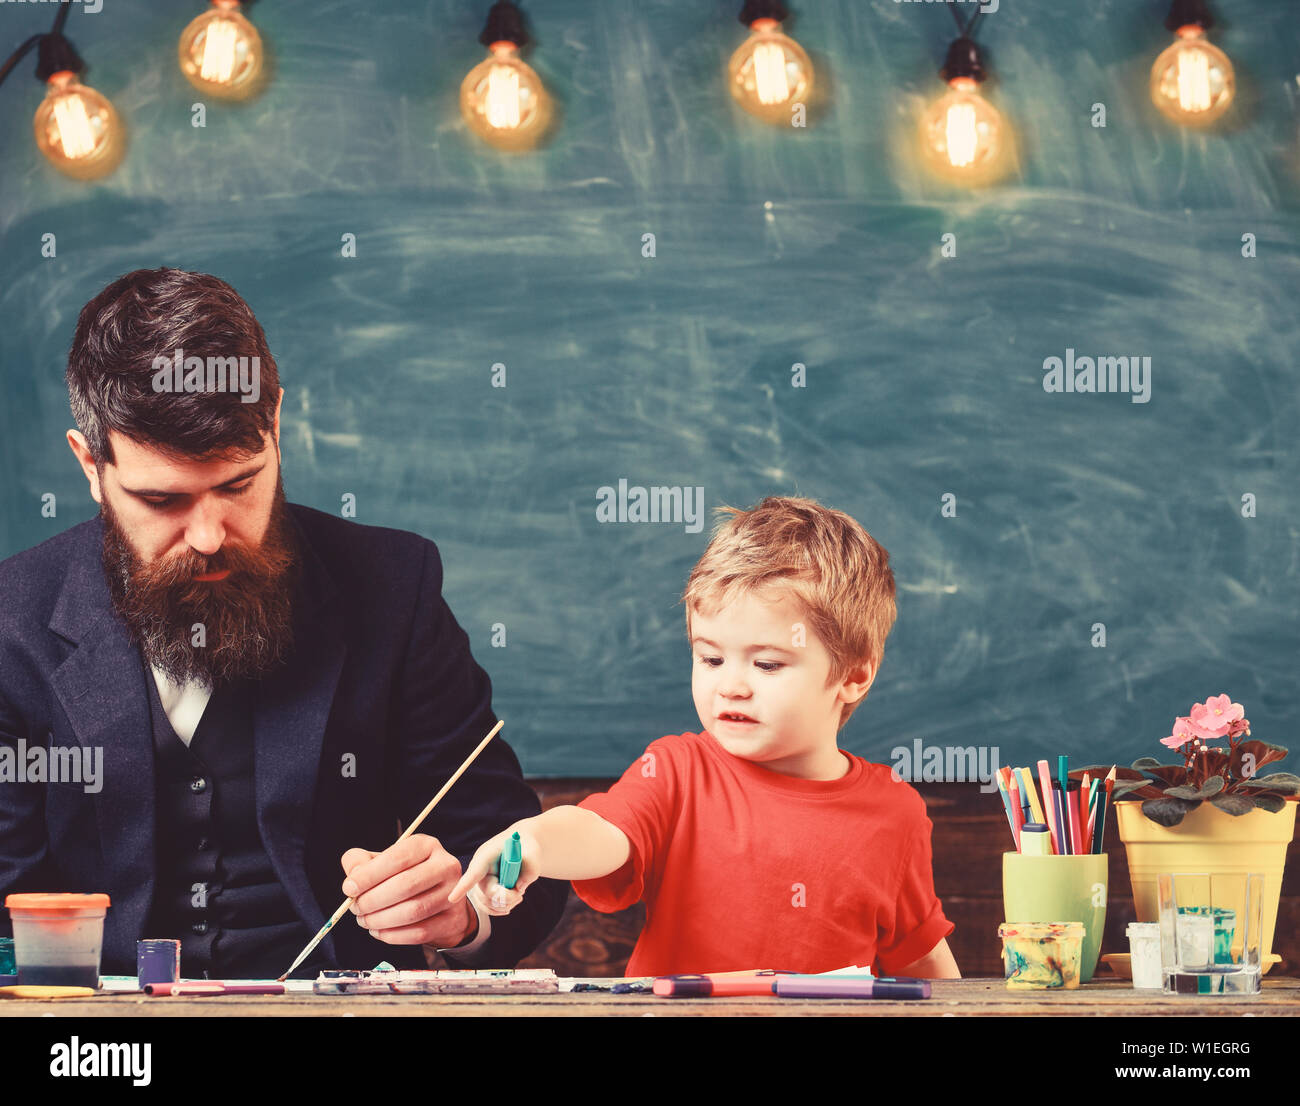 Teacher with beard, father teaches little son to draw in classroom, chalkboard on background. Child and teacher on busy face painting, drawing. Art lesson concept. Talented artist spend time with son. Stock Photo